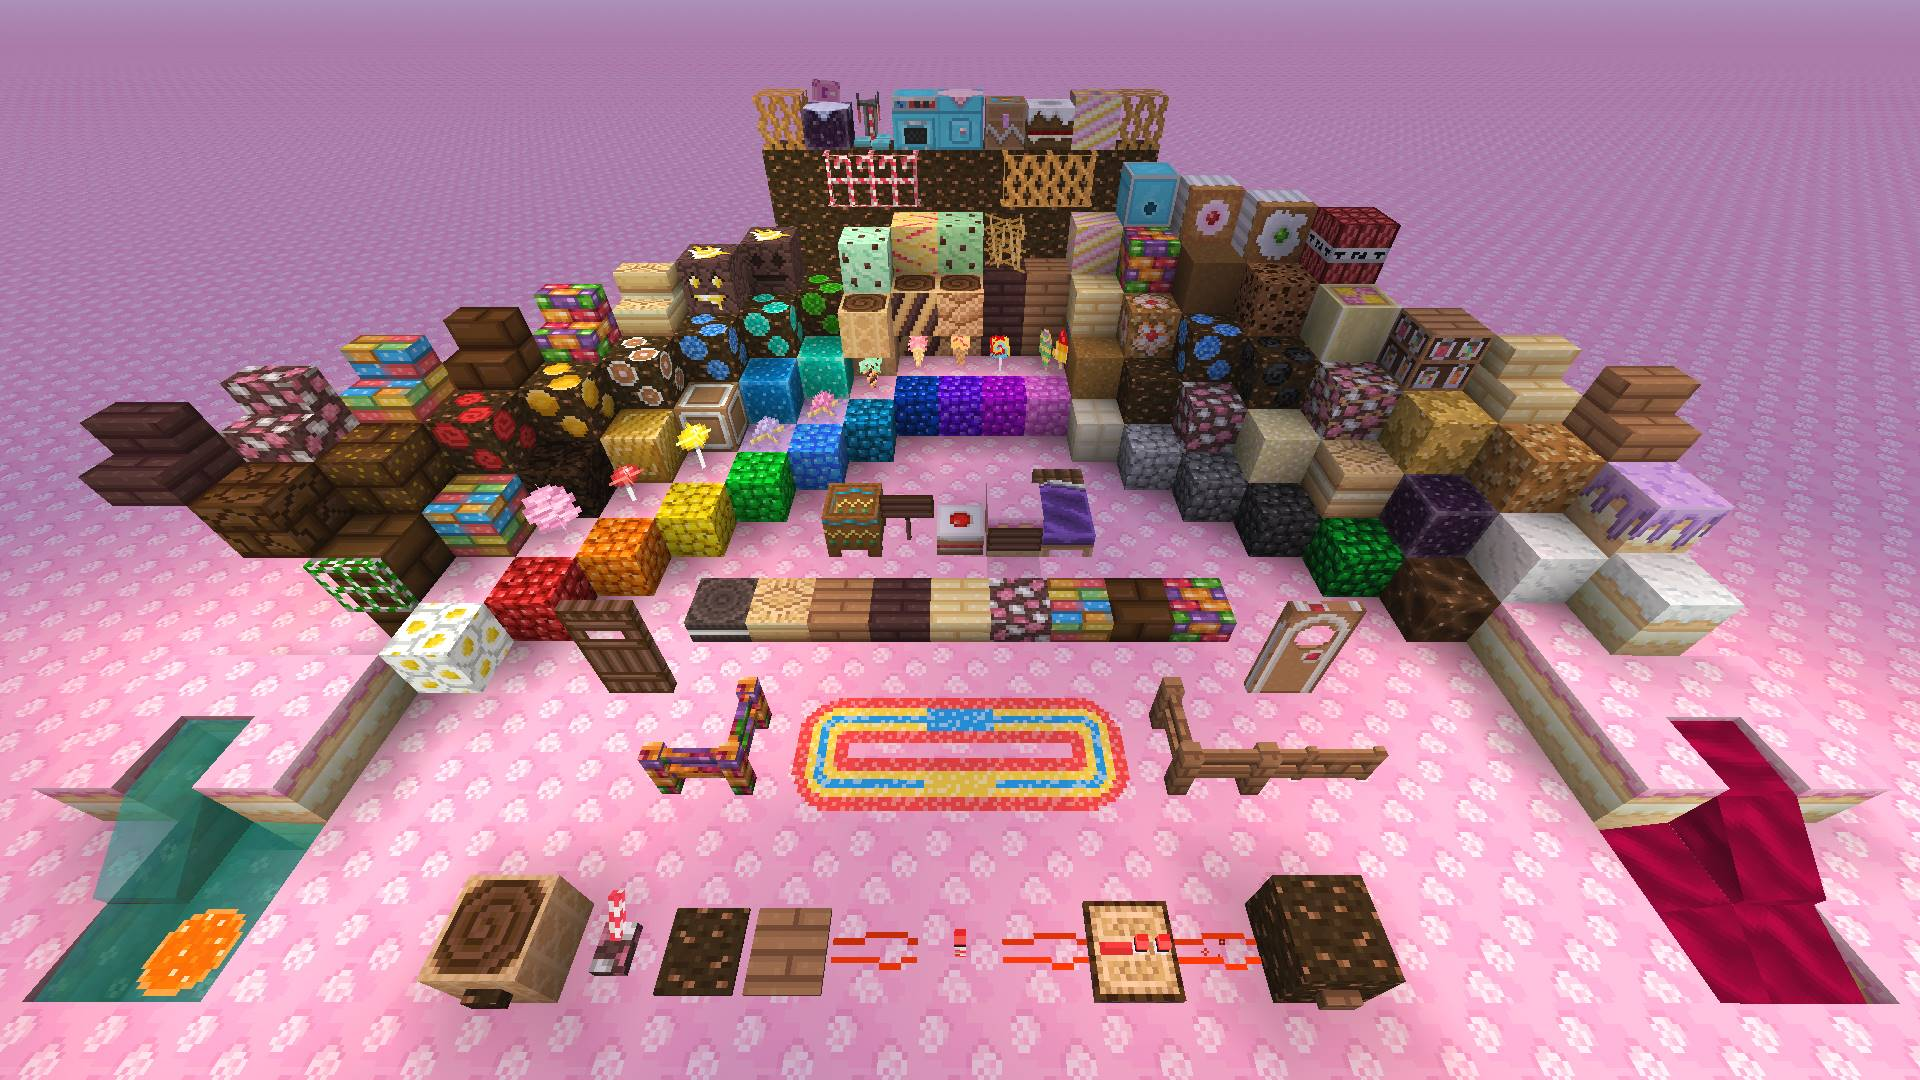 minecraft candy texture pack on ps4 official playstation store us. Black Bedroom Furniture Sets. Home Design Ideas